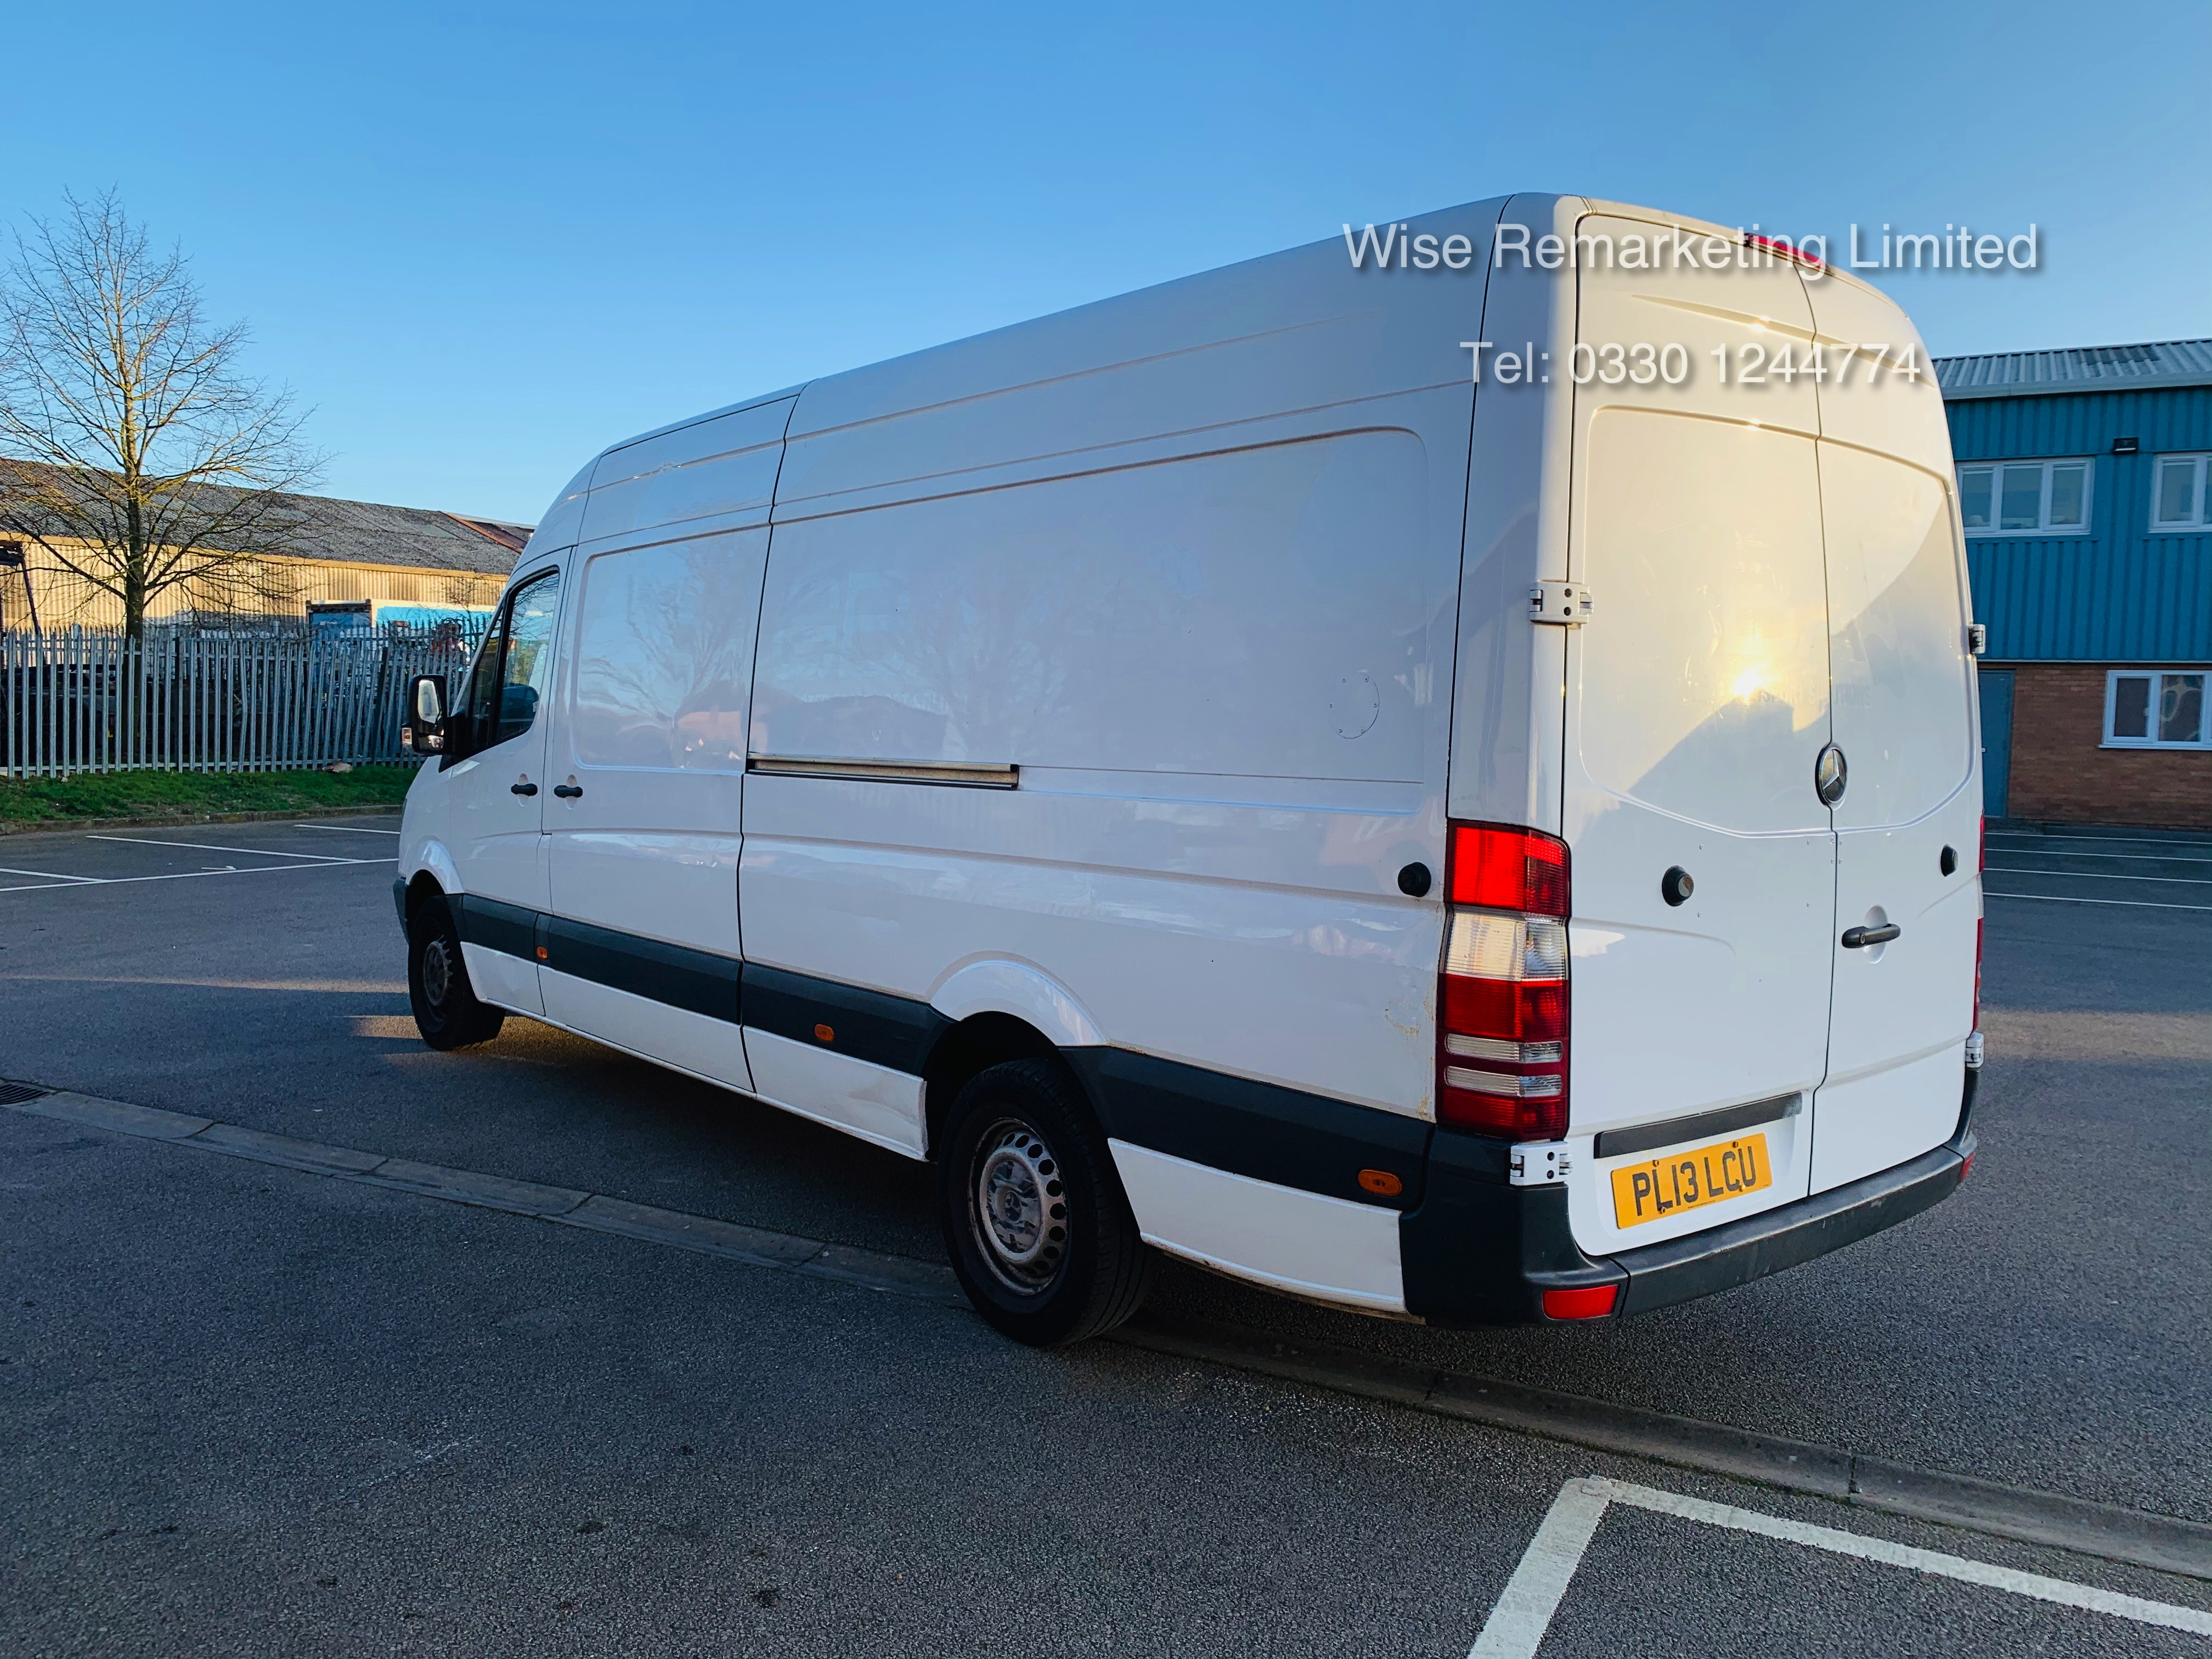 Mercedes Sprinter 316 2.1 CDI Long Wheel Base High Roof Van - 2013 13 Reg - 1 Owner From New - Image 6 of 20